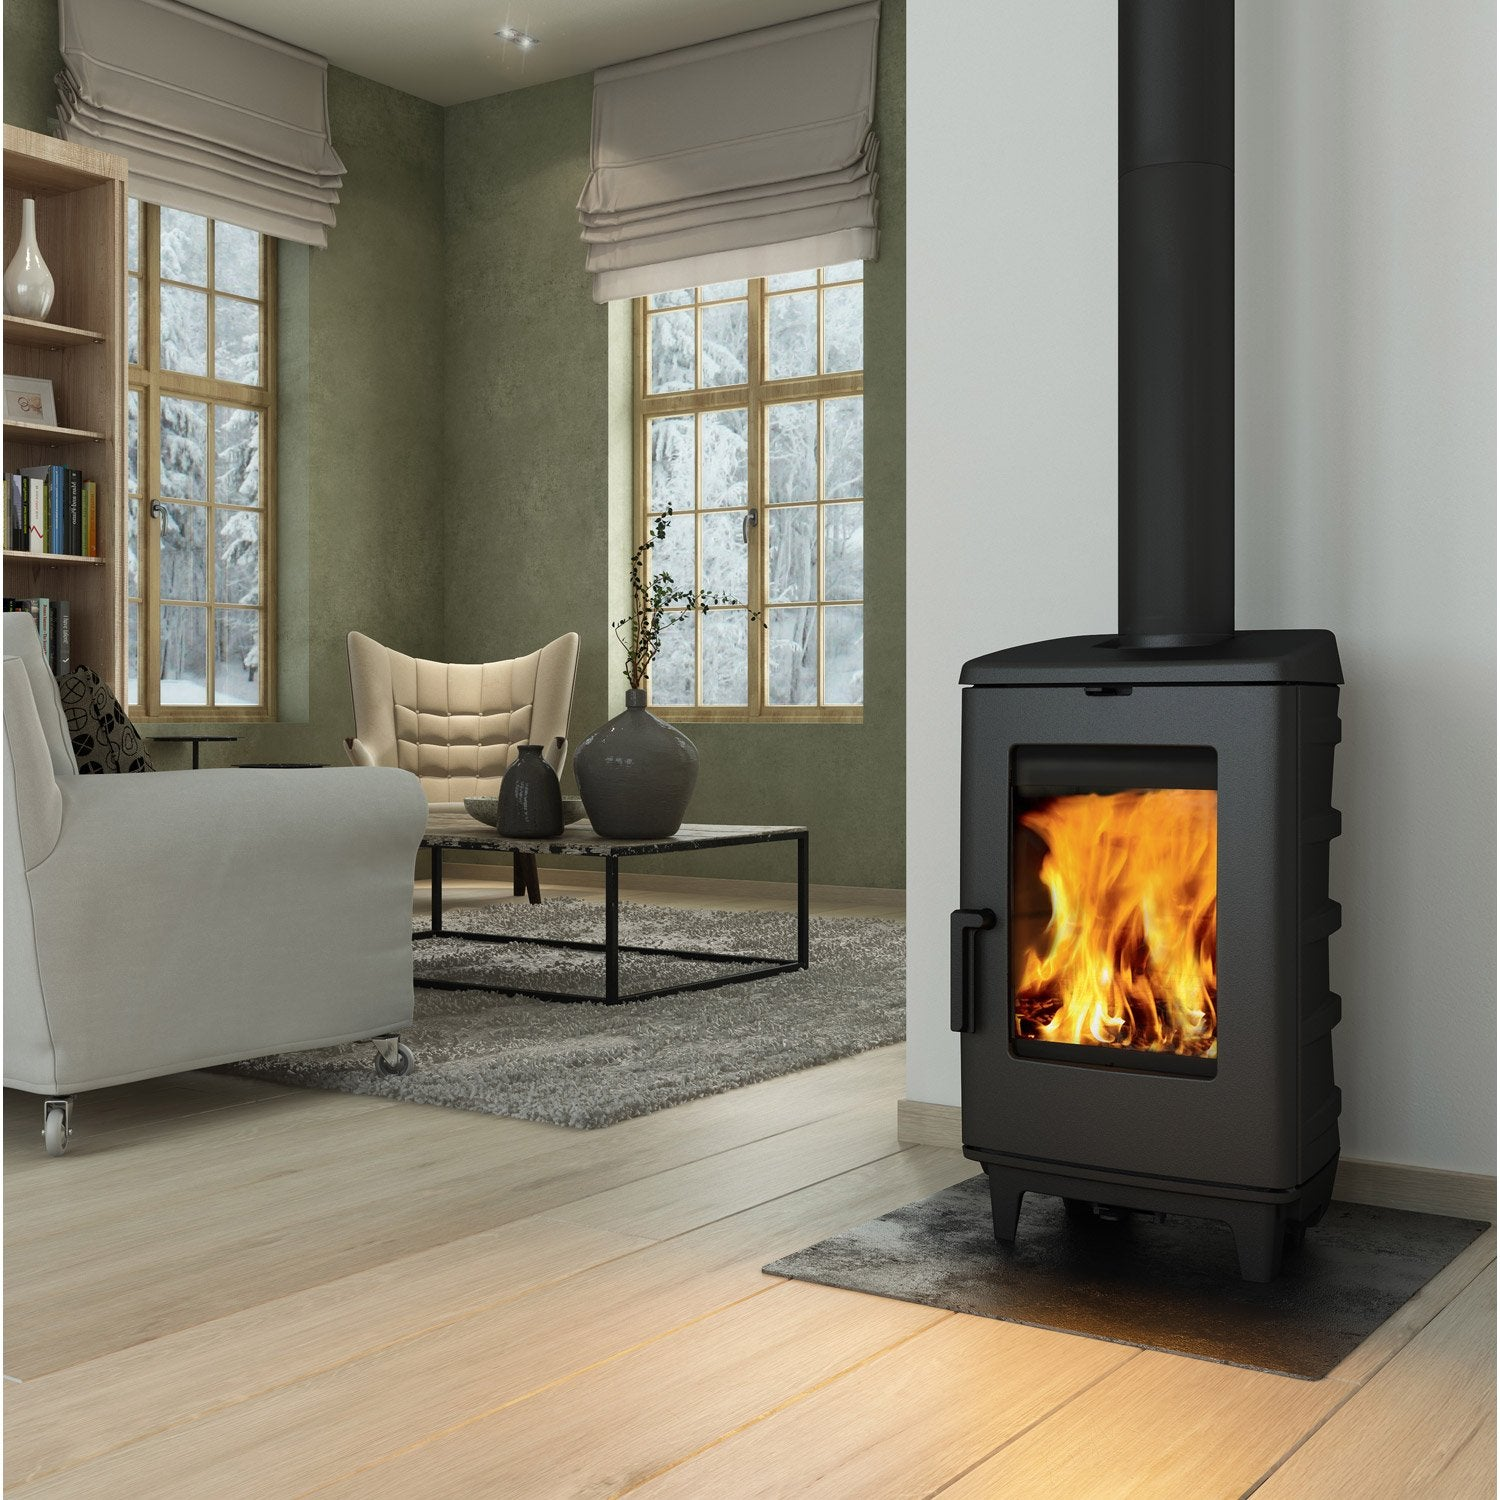 Po le bois norflam ardente noir 8 kw leroy merlin for Decoration poele a bois